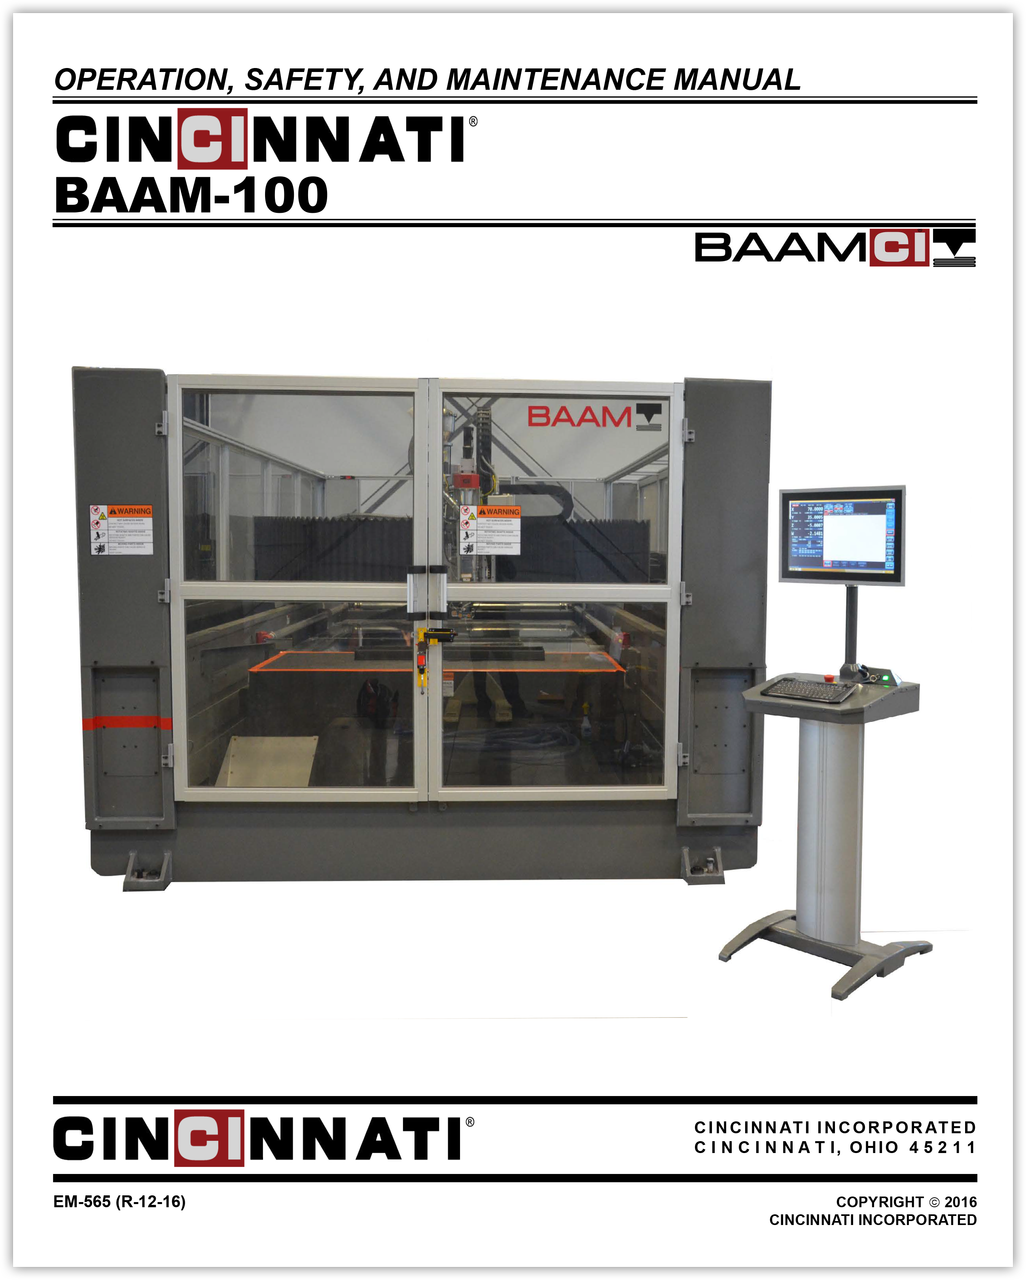 EM-565 (R-12-16) BAAM 100_Operation, Safety and Maintenance Manual